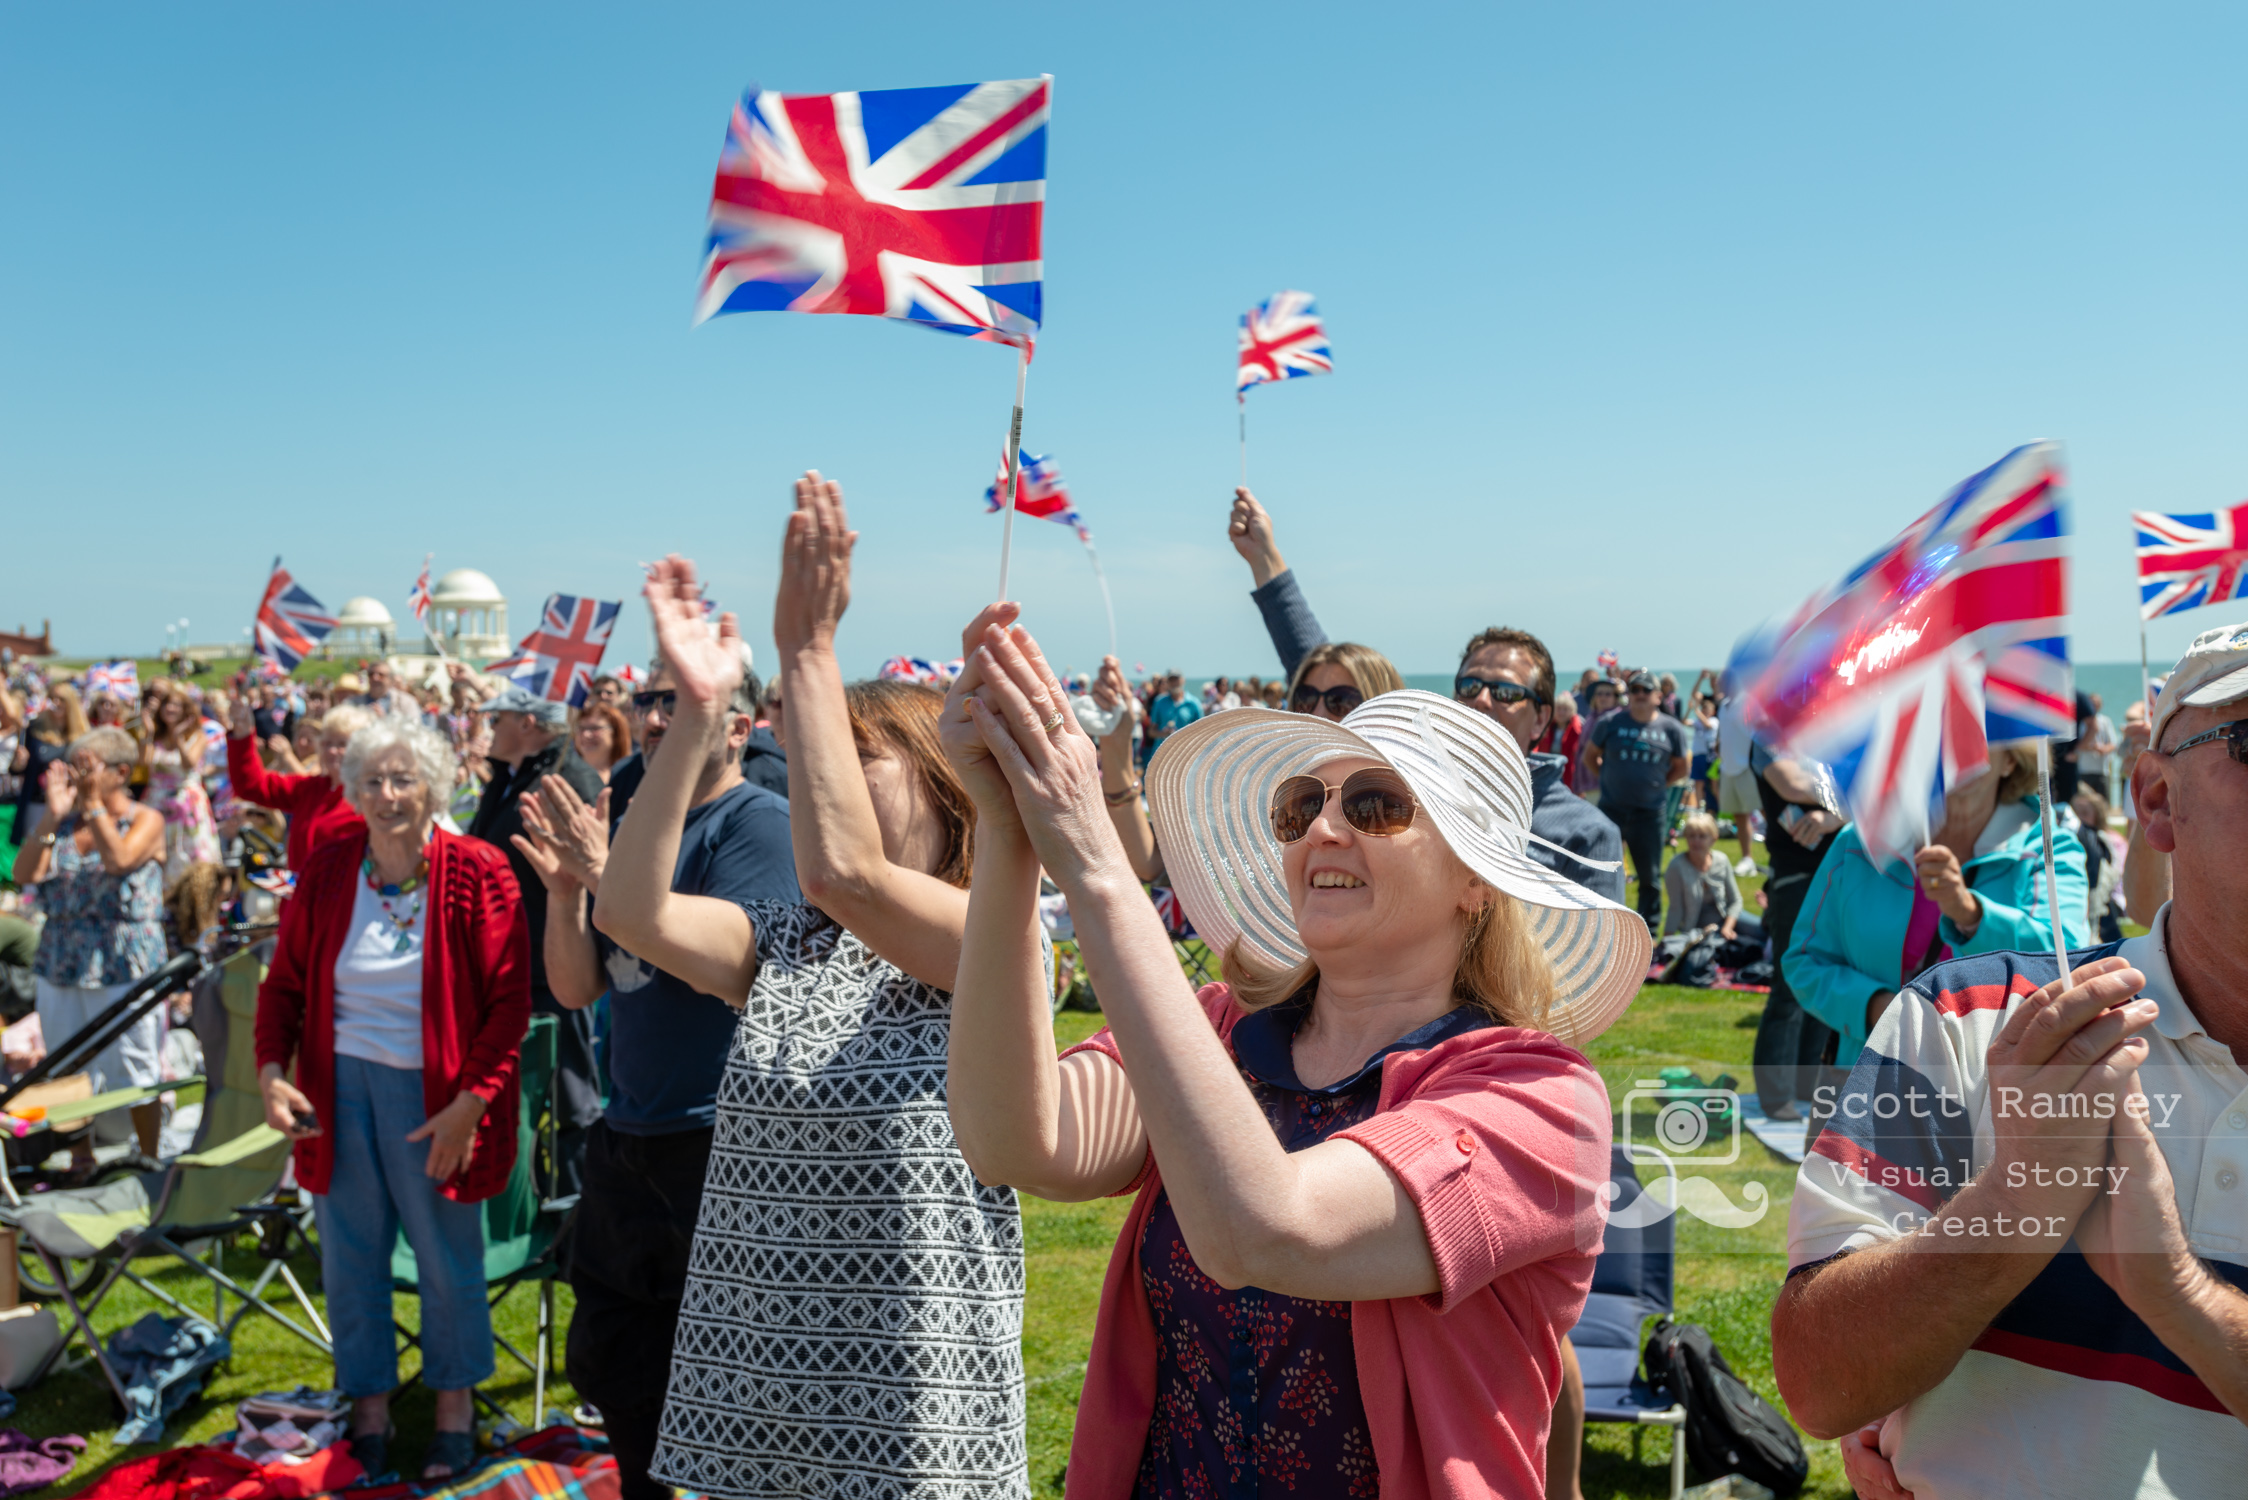 East-Sussex-Editorial-Photographer-Bexhill-Royal-Wedding-Celebrations-©-Scott-Ramsey-www.scottramsey.co.uk-012.jpg